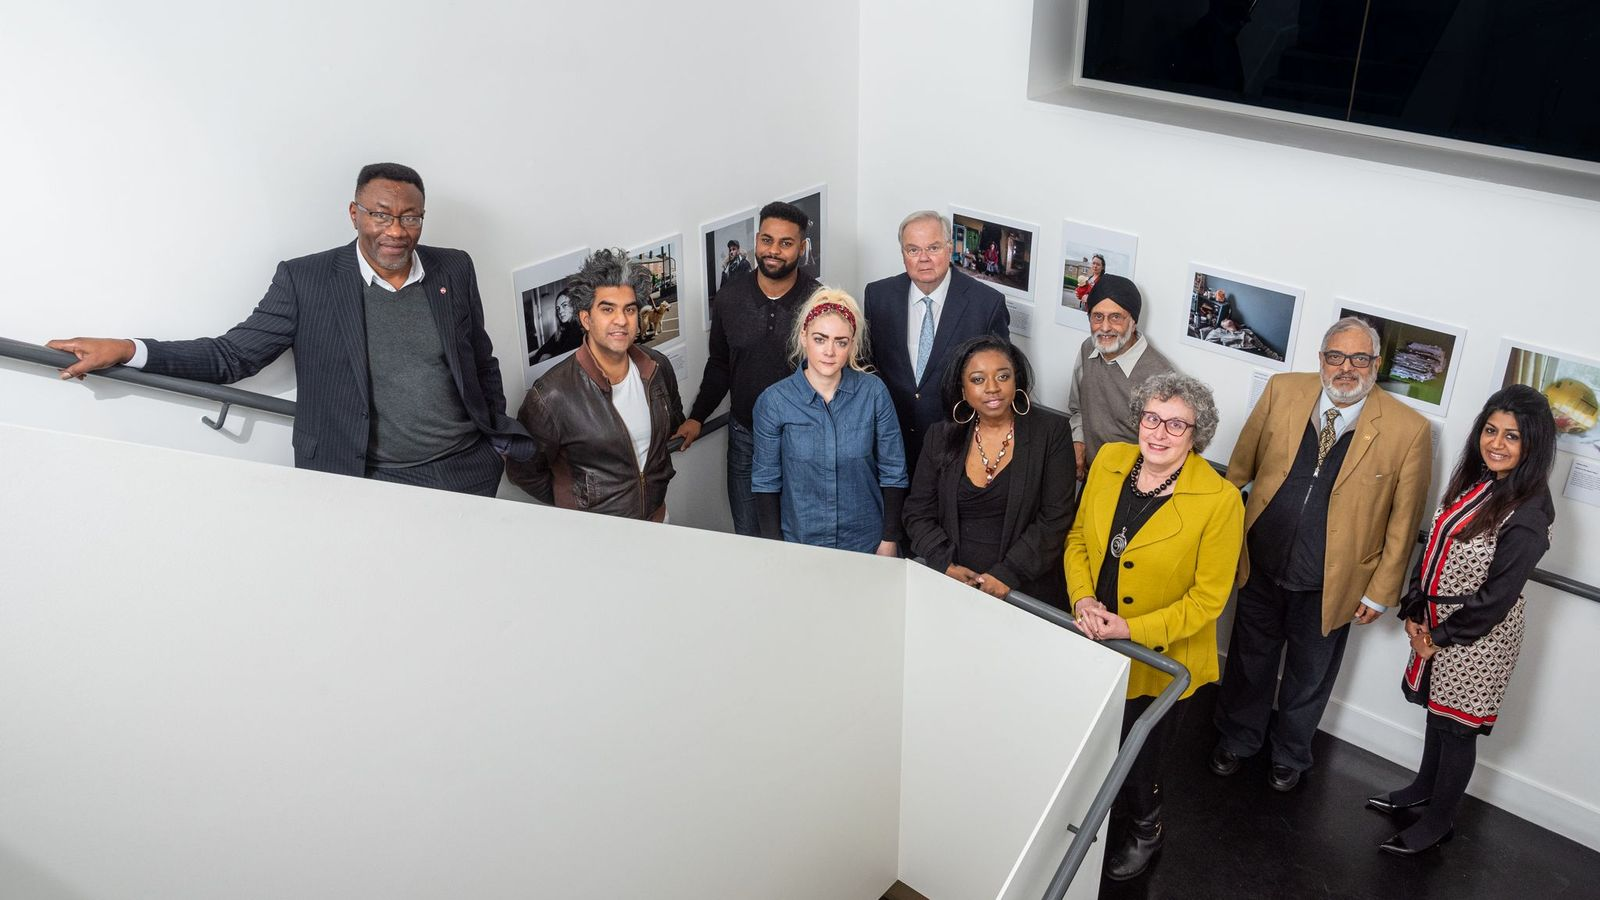 Trustees of the New Art Exchange in Nottingham. The organsation's goal is for two-thirds of its board to represent BAME communities